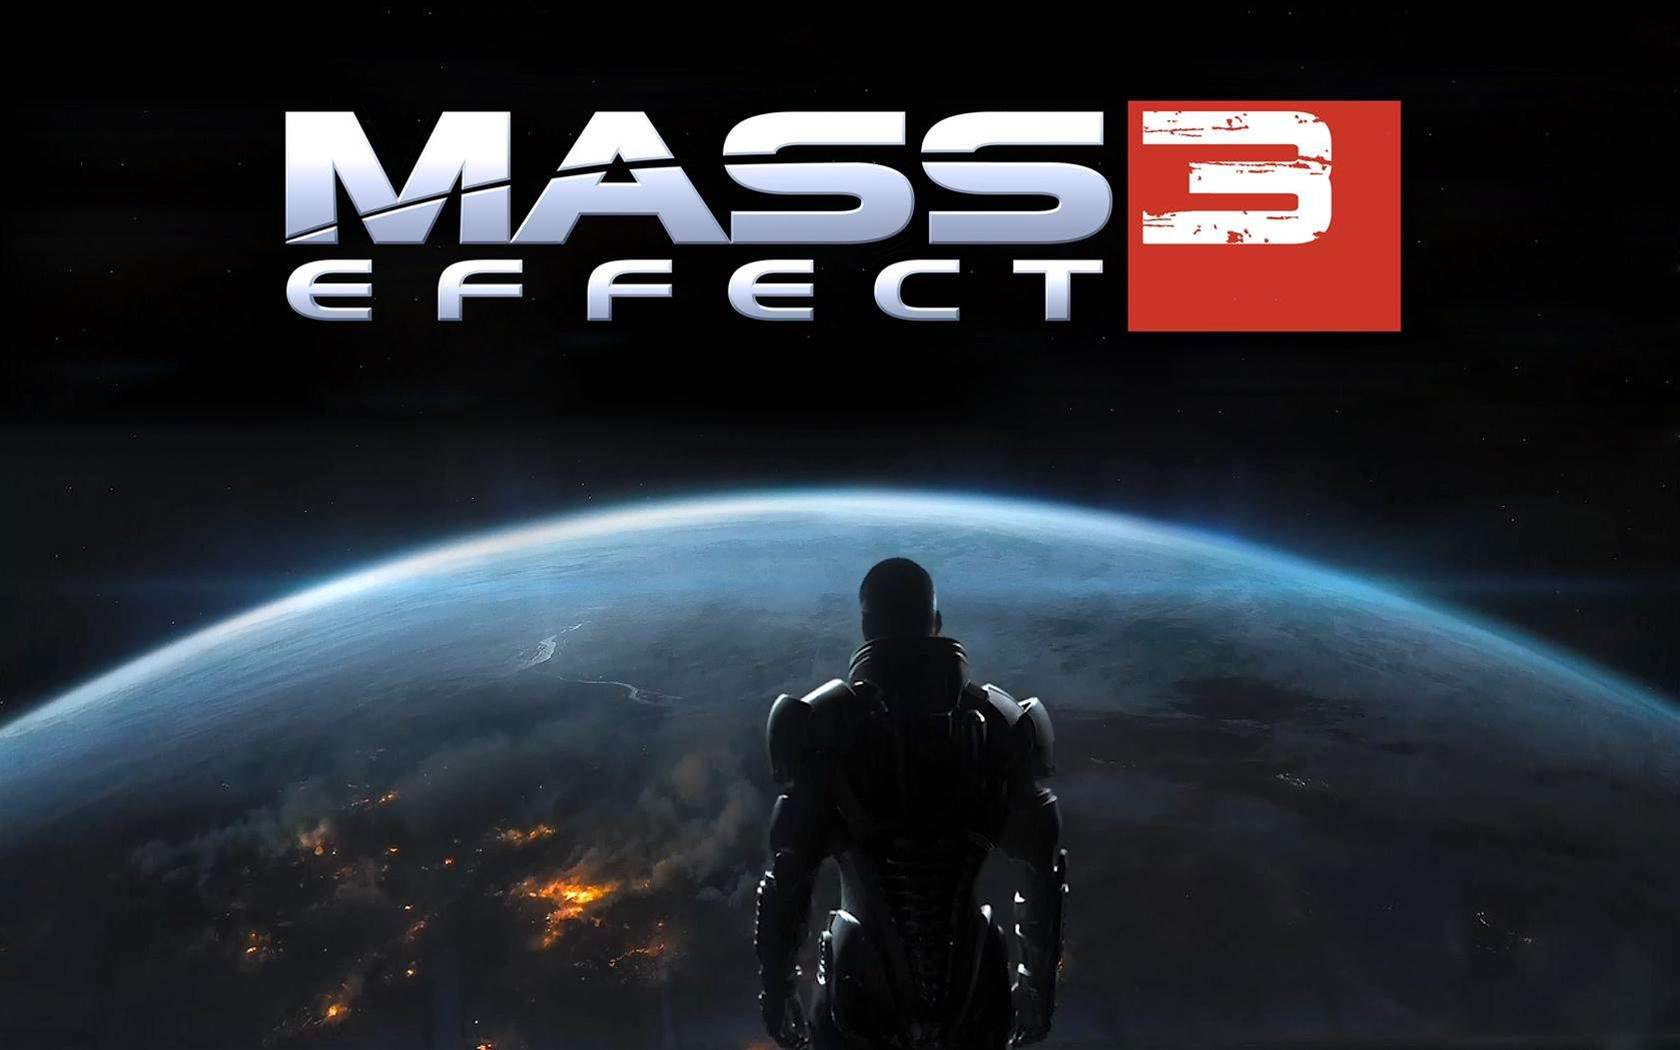 Mass Effect 3 special edition unboxing vid will make you drool